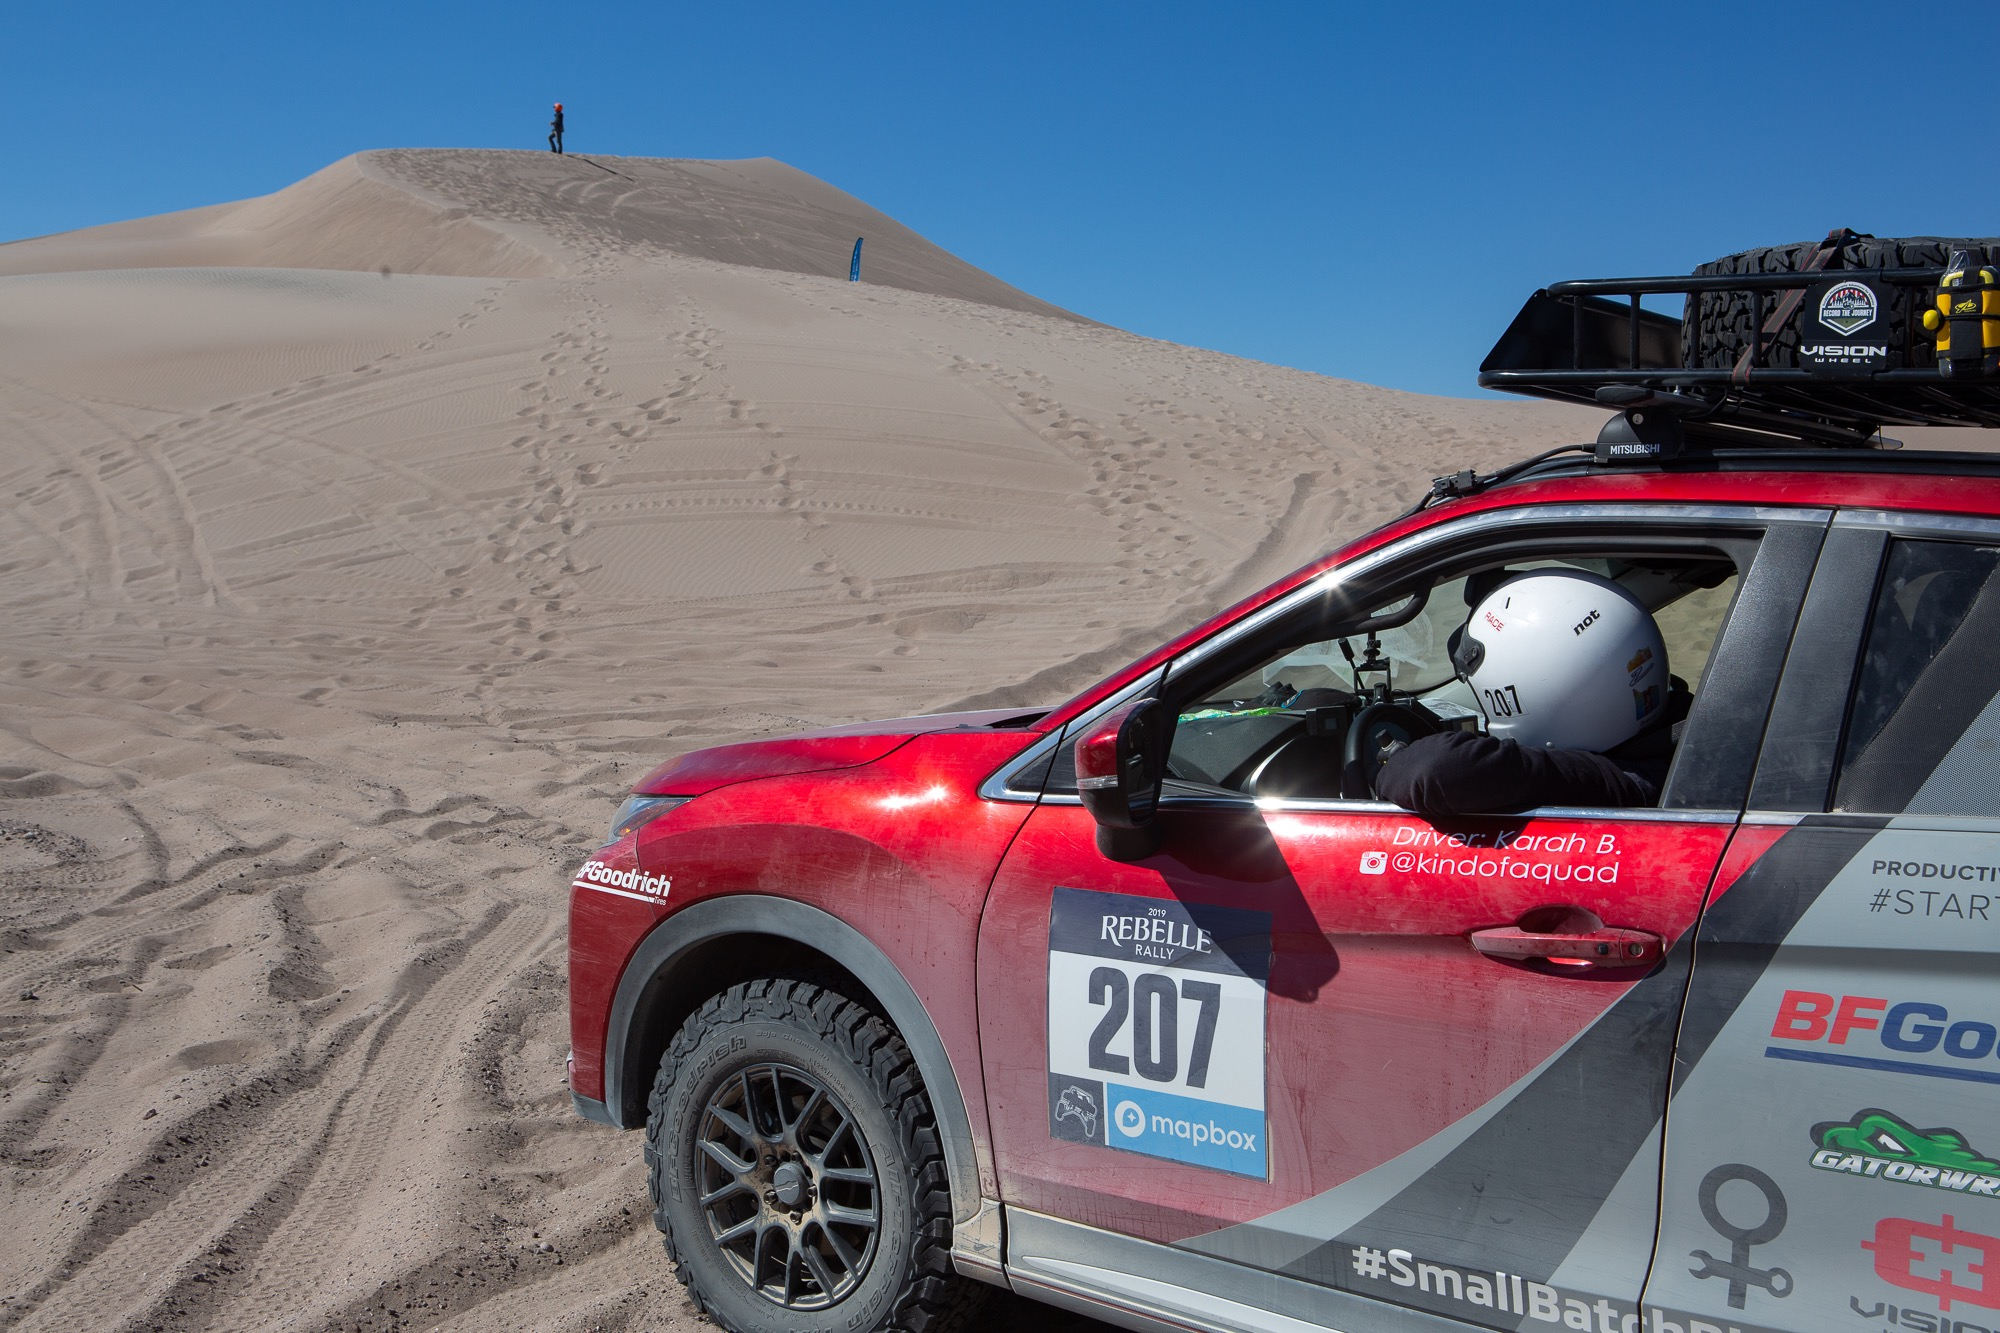 Karah Behrend in white helmet shown in the driver's seat of a red SUV, spotting a line up a sand dune